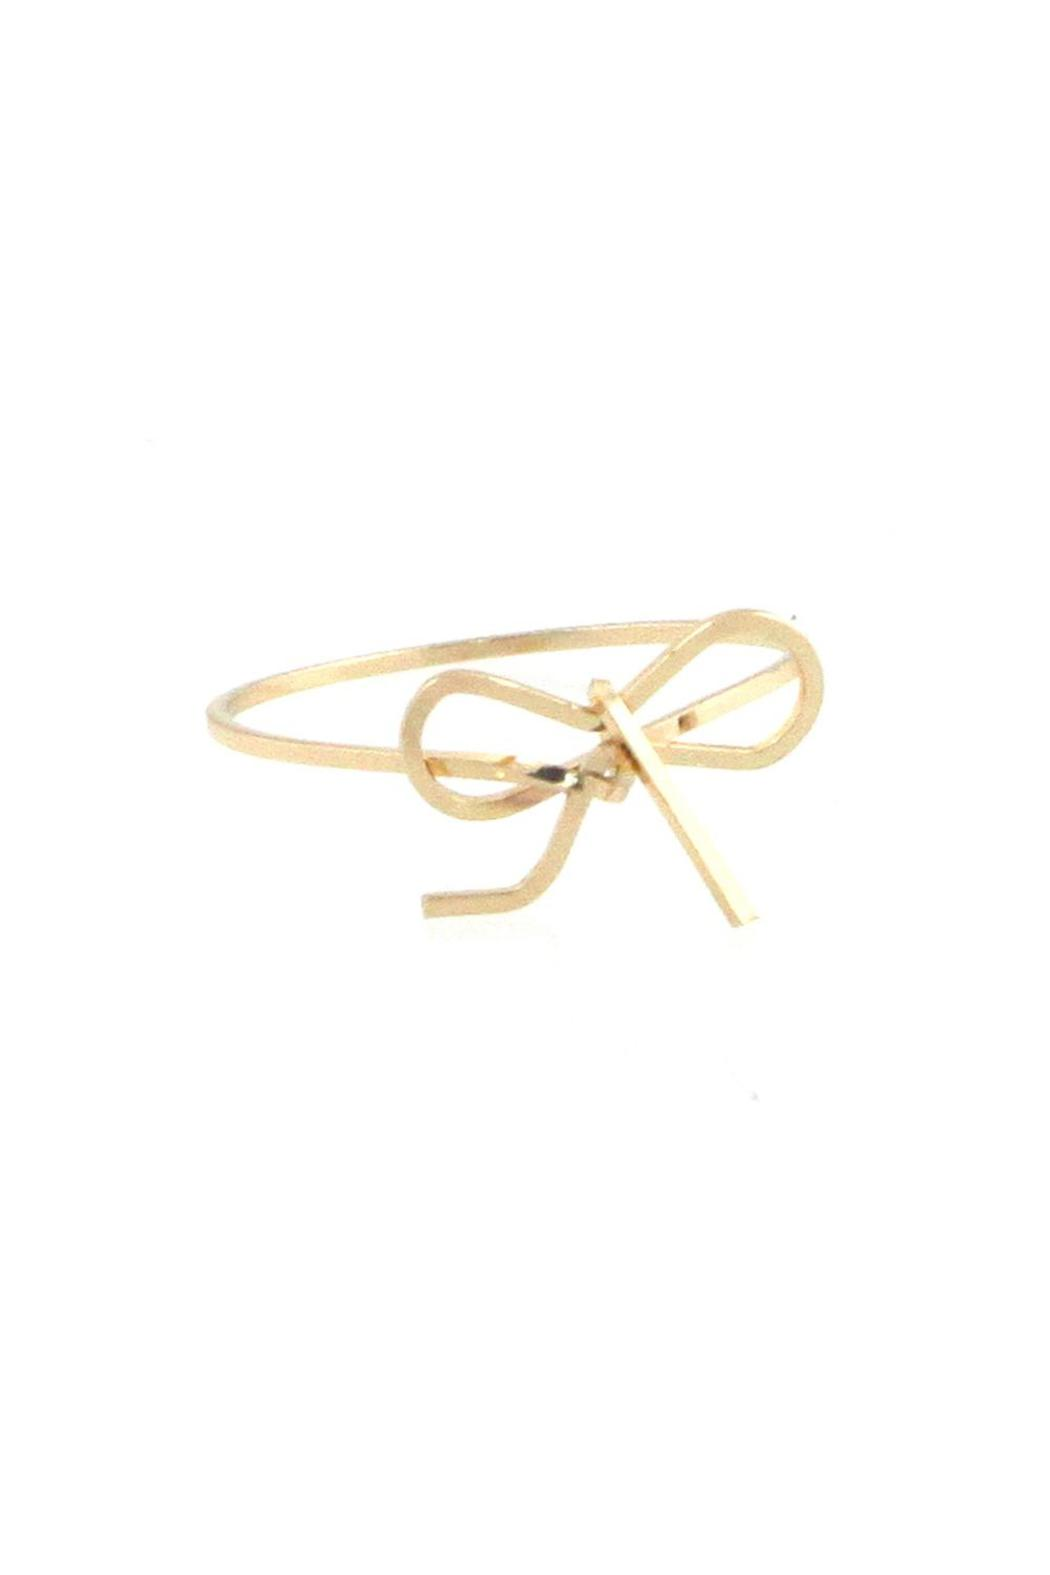 U.S. Jewlery House Gold Bow Ring - Front Cropped Image